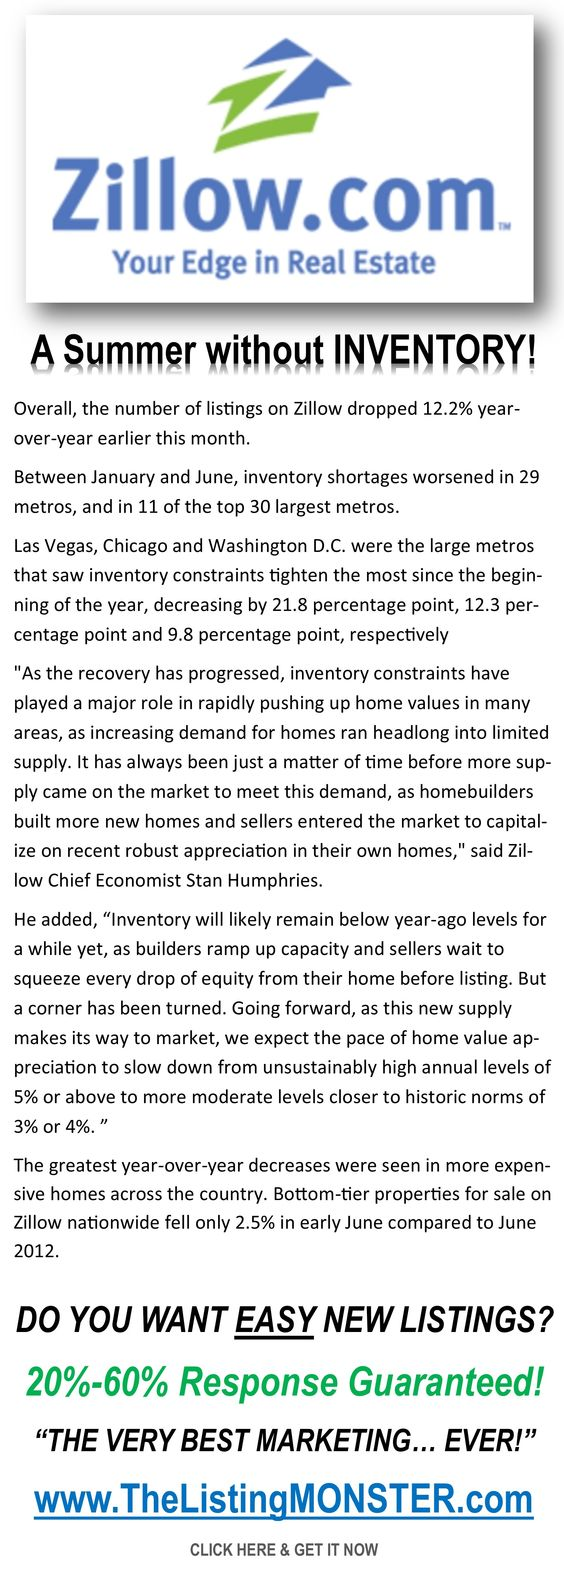 A SUMMER WITHOUT NEW LISTINGS Zillow.com reports a drop in listings Overall, the number of listings on Zillow dropped 12.2% year-over-year earlier this month. metros.  Las Vegas, Chicago and Washington D.C. were the large metros that saw inventory constraints tighten the most since the beginning of the year, decreasing by 21.8 percentage point, 12.3 percentage point and 9.8 percentage point, respectively READ MORE: http://honish.com/a-summer-without-inventory/